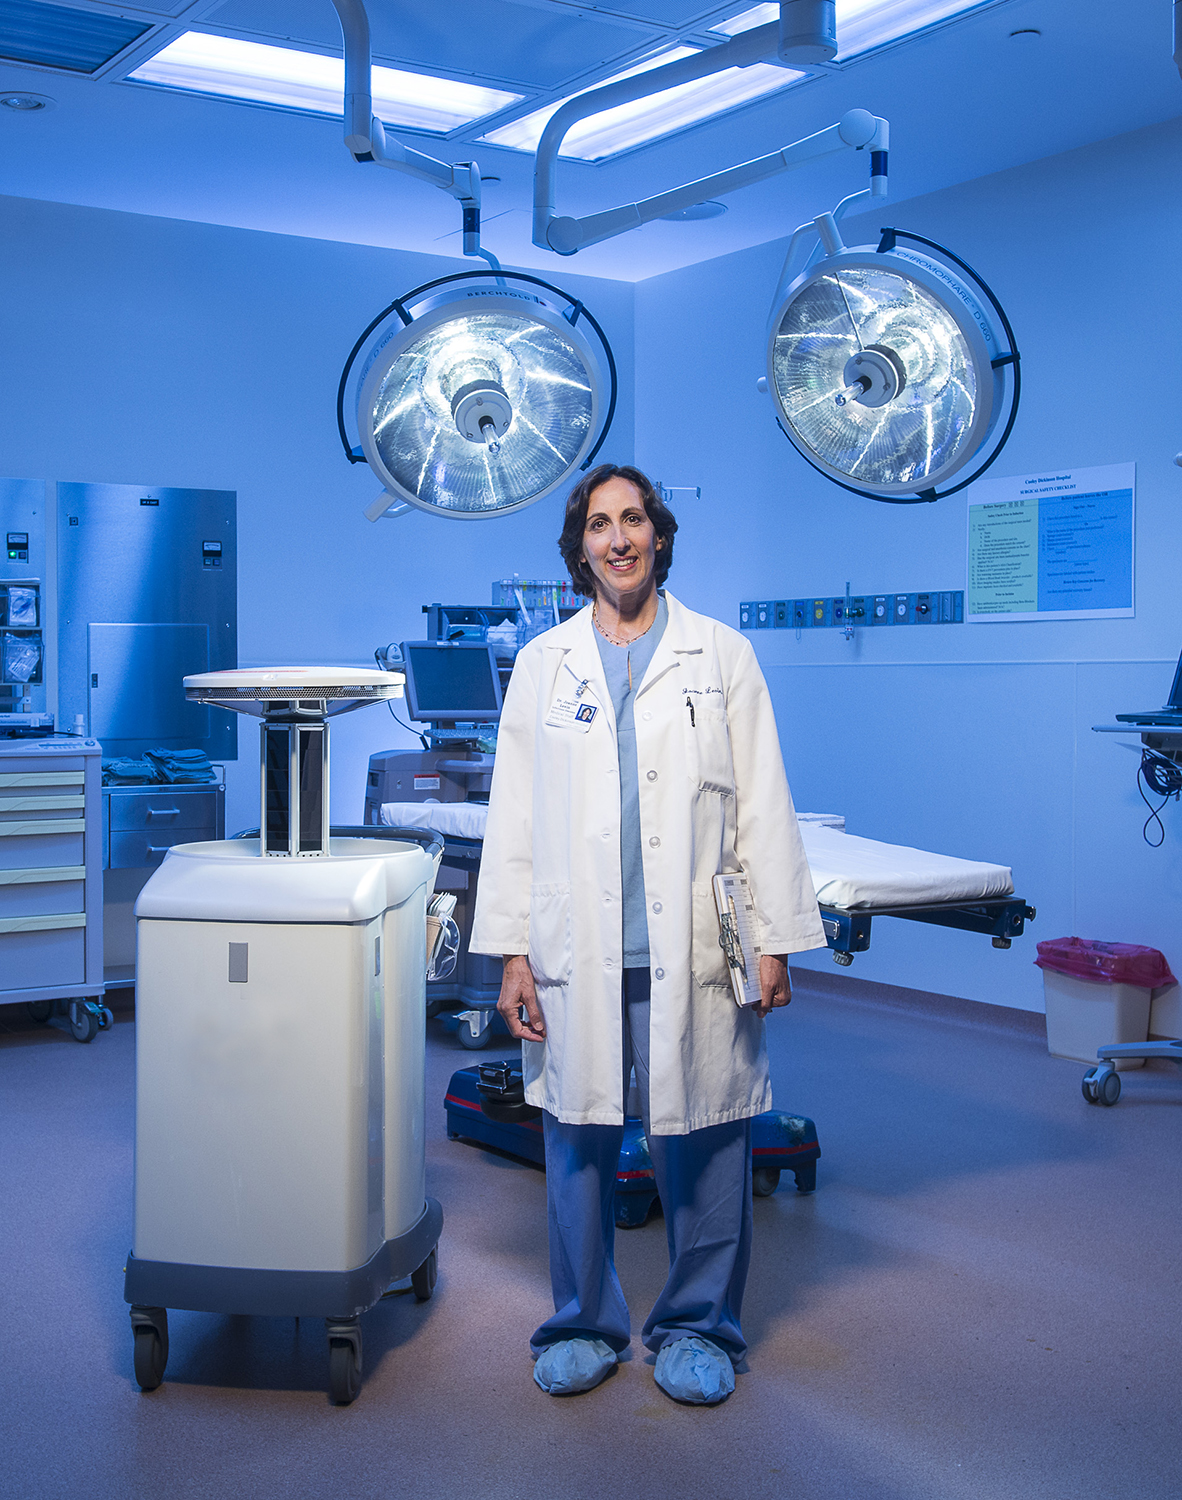 Provider with UV disinfection robot at Cooley Dickinson Hospital, 30 Locust Street, Northampton, MA 01060.